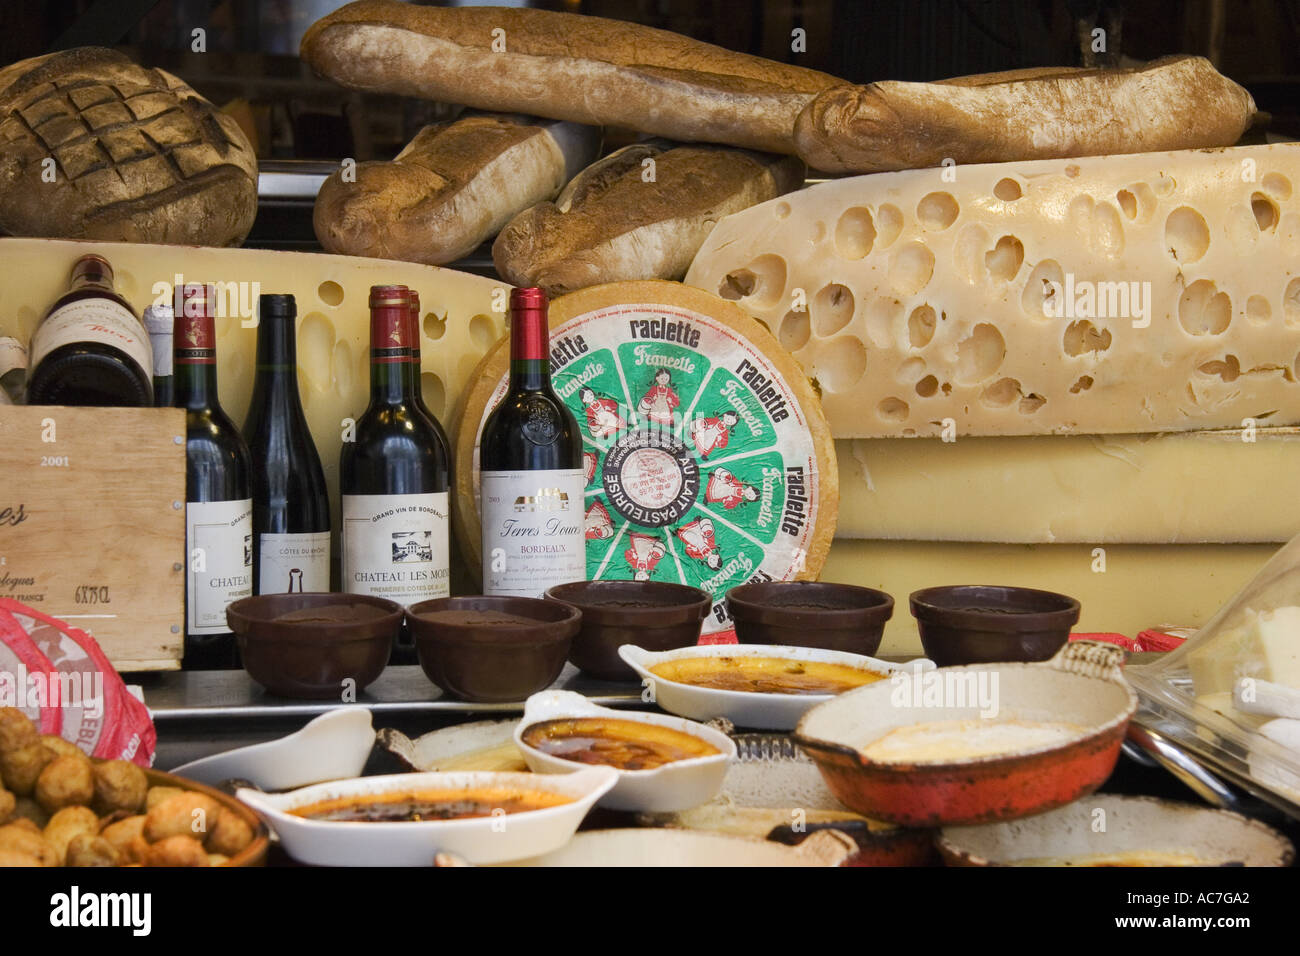 Restaurant Raclette Bordeaux Paris Bordeaux Paris Stock Photos Paris Bordeaux Paris Stock